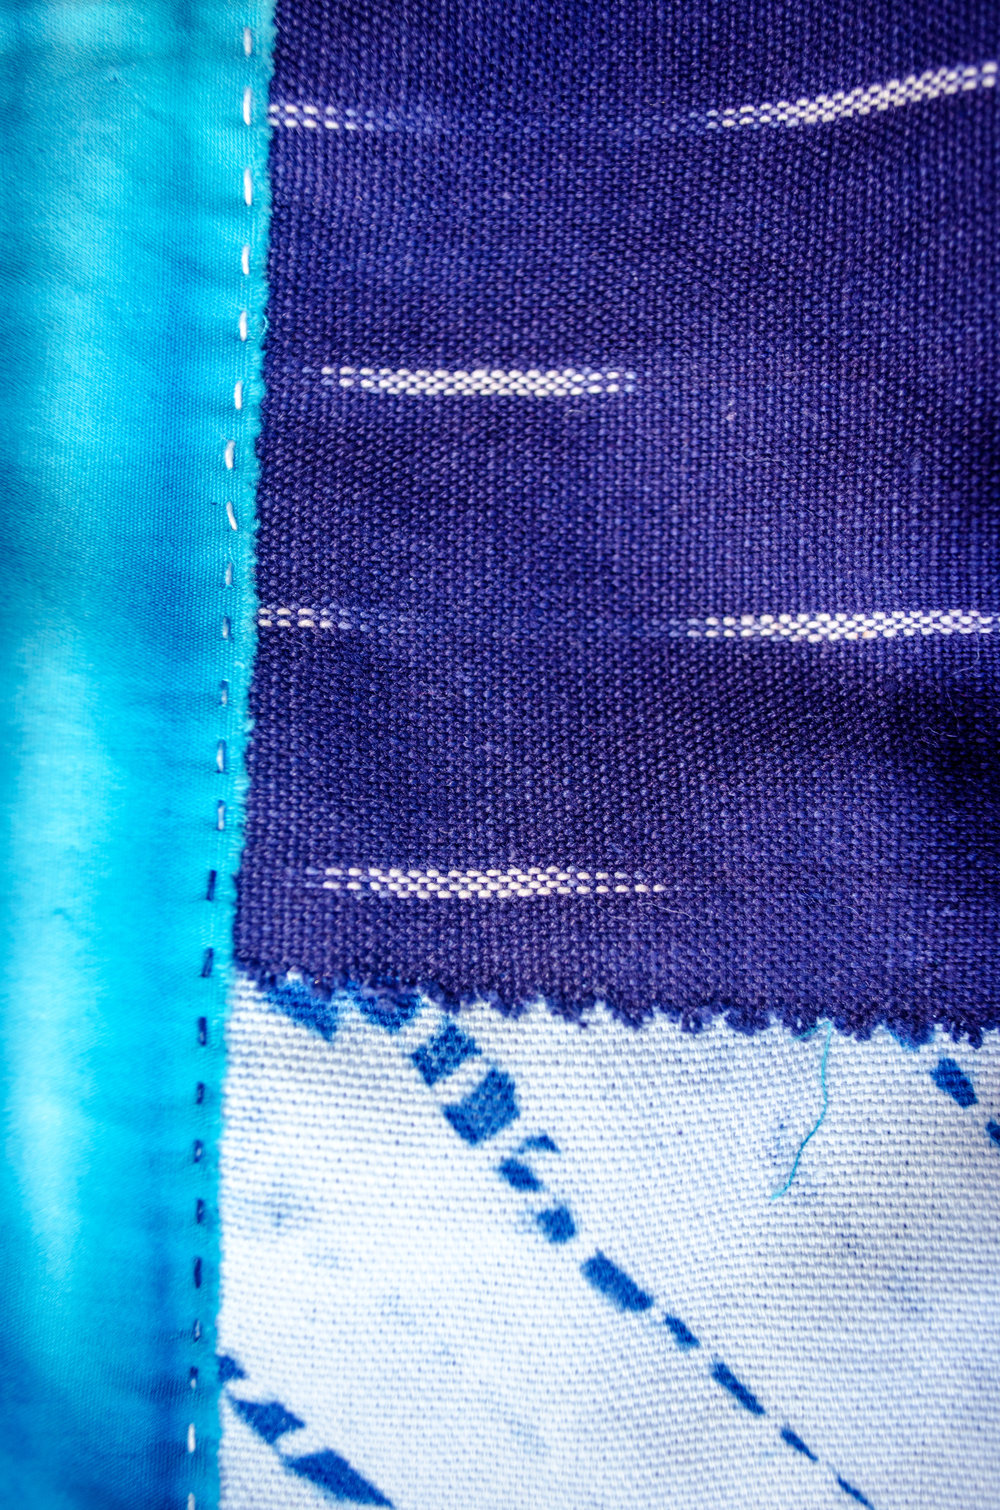 handstitched using indigo dyed cotton thread